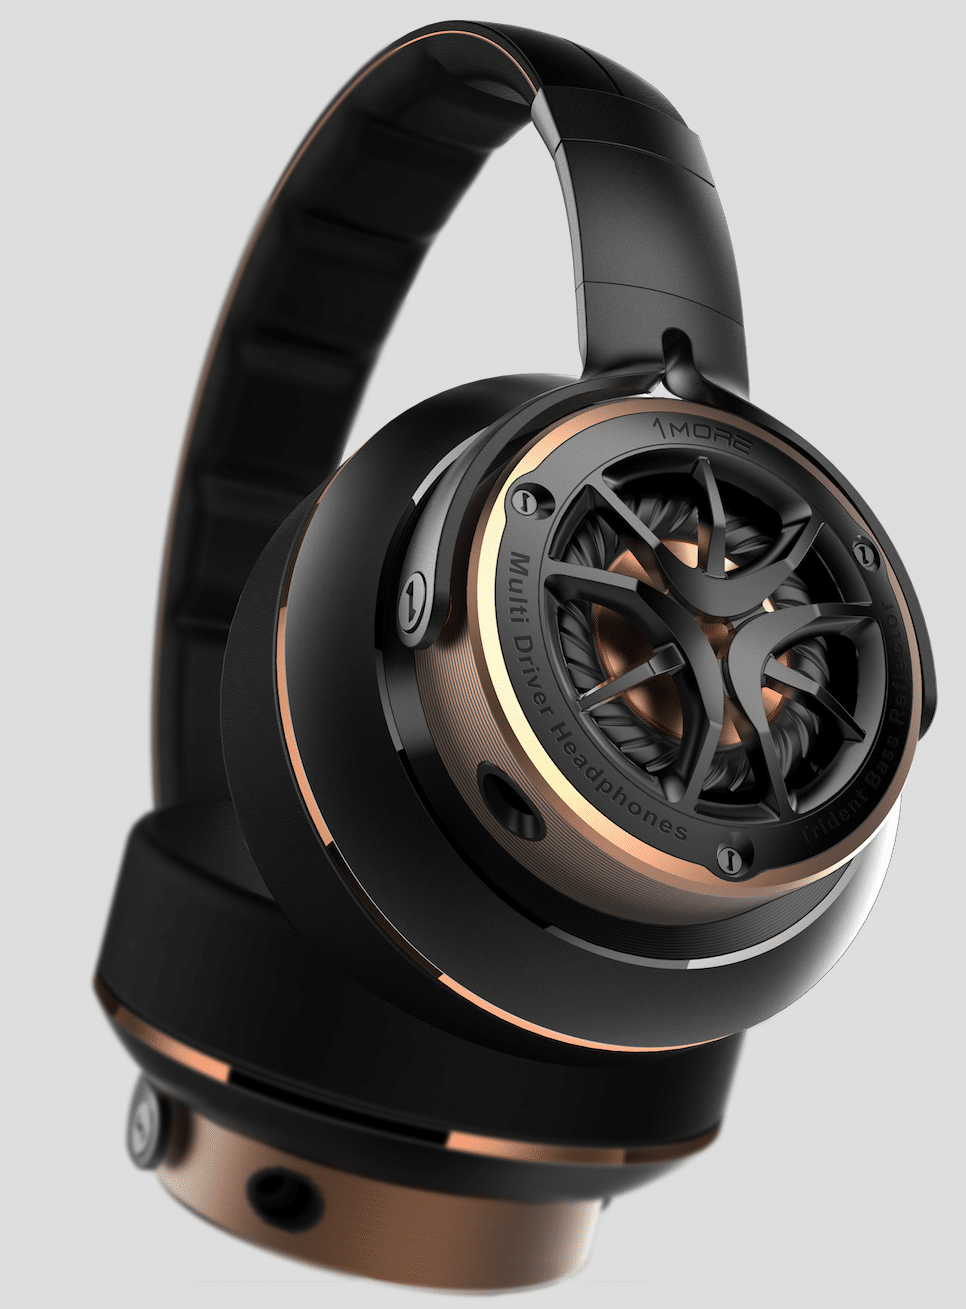 1MORE has introduced its H1707 Triple Driver Over-Ear Headphones to the UK